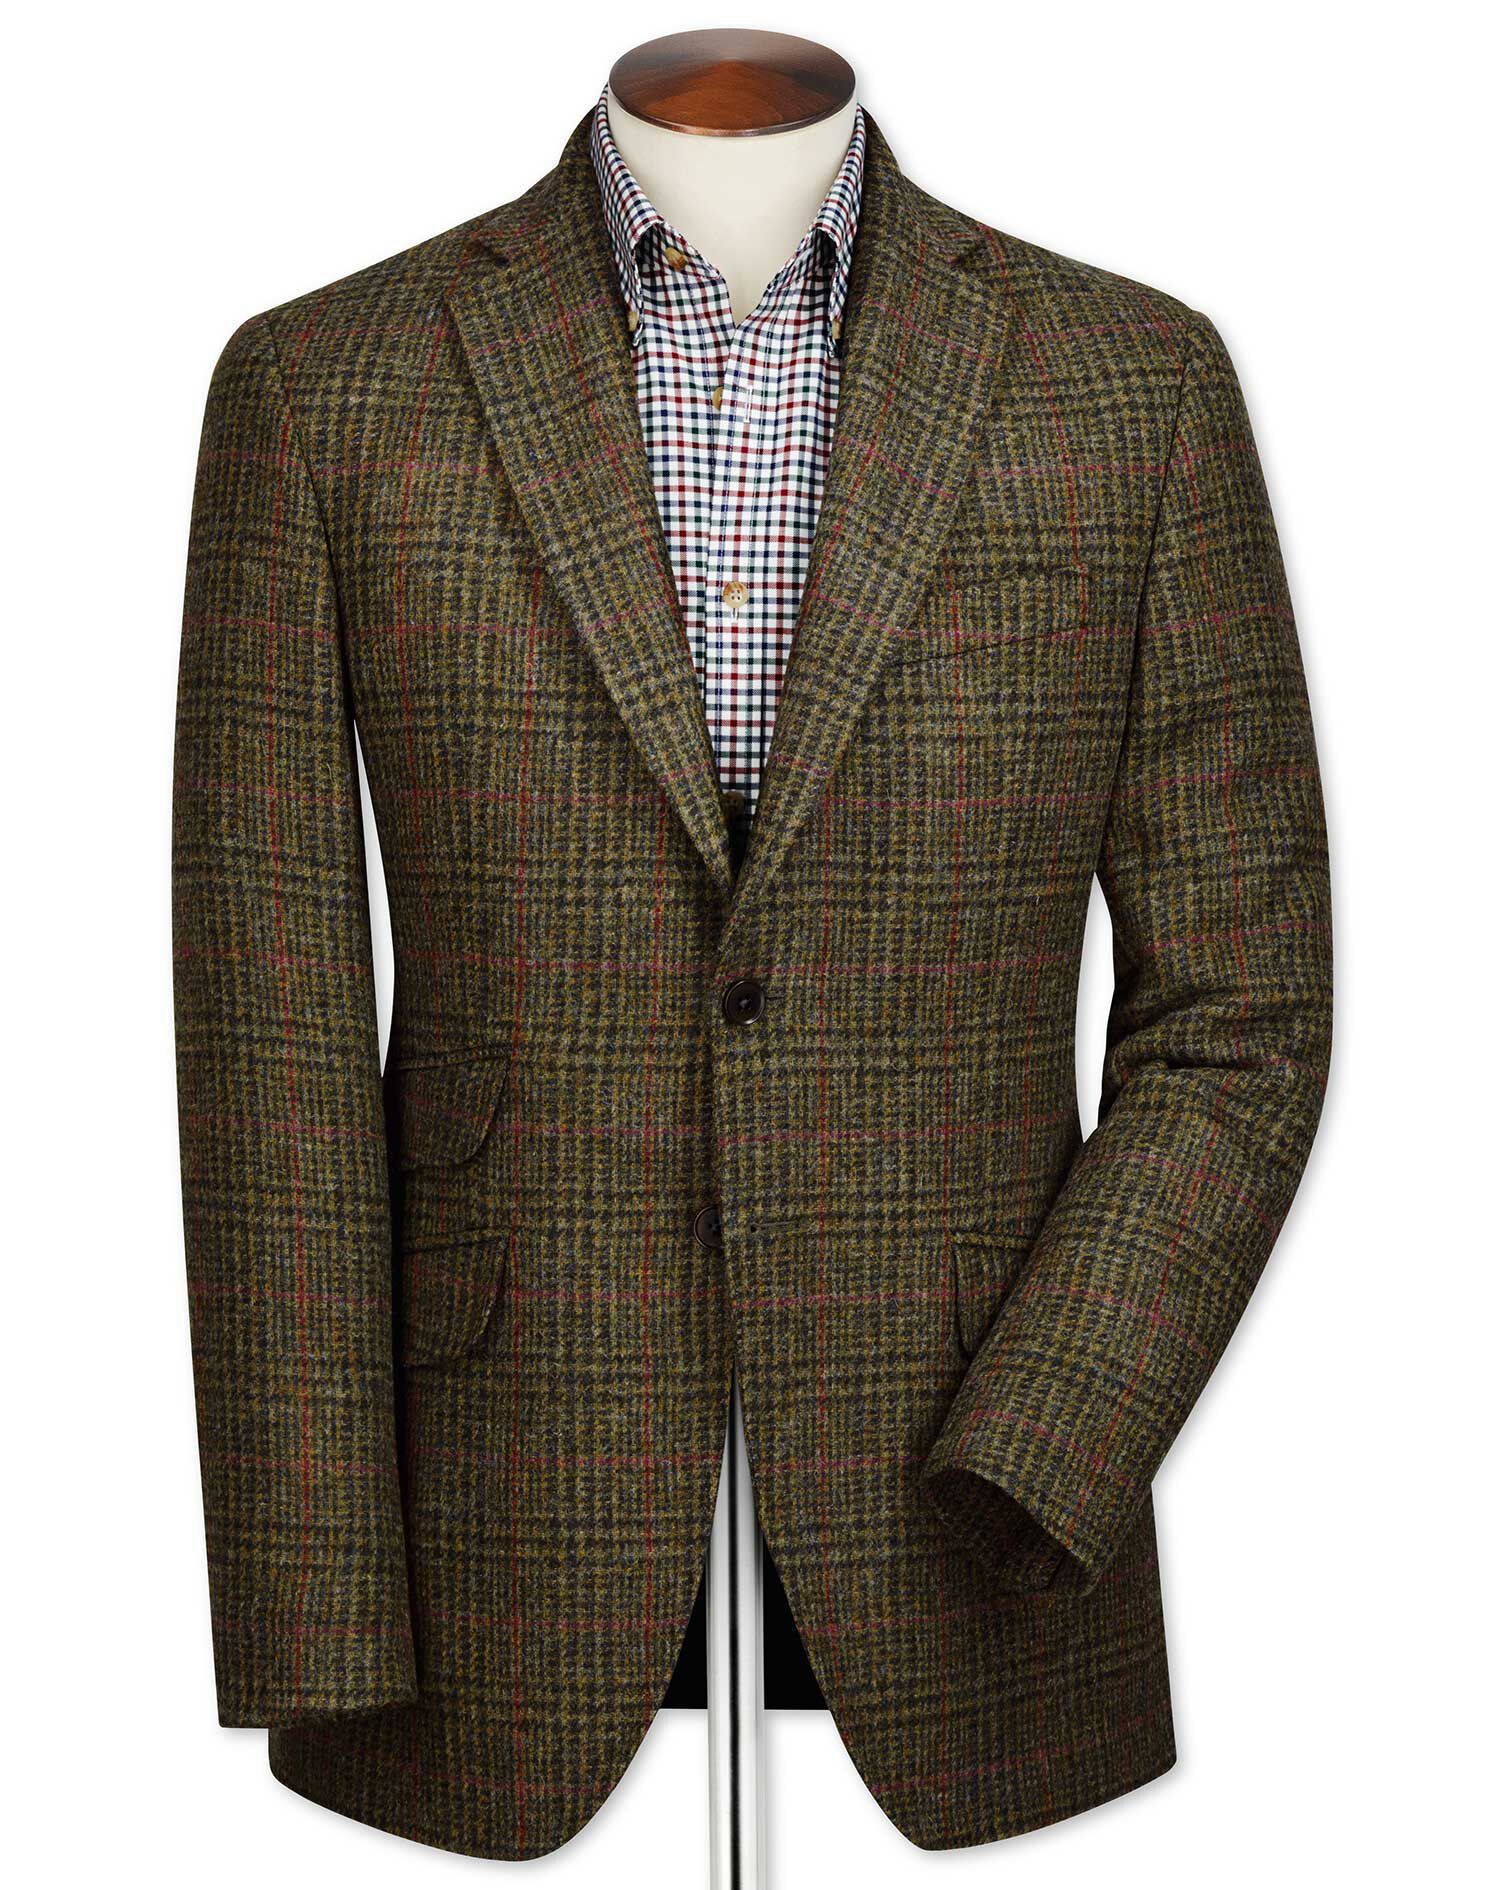 Slim Fit Green Checkered British Tweed Wool Jacket Size 36 Short by Charles Tyrwhitt